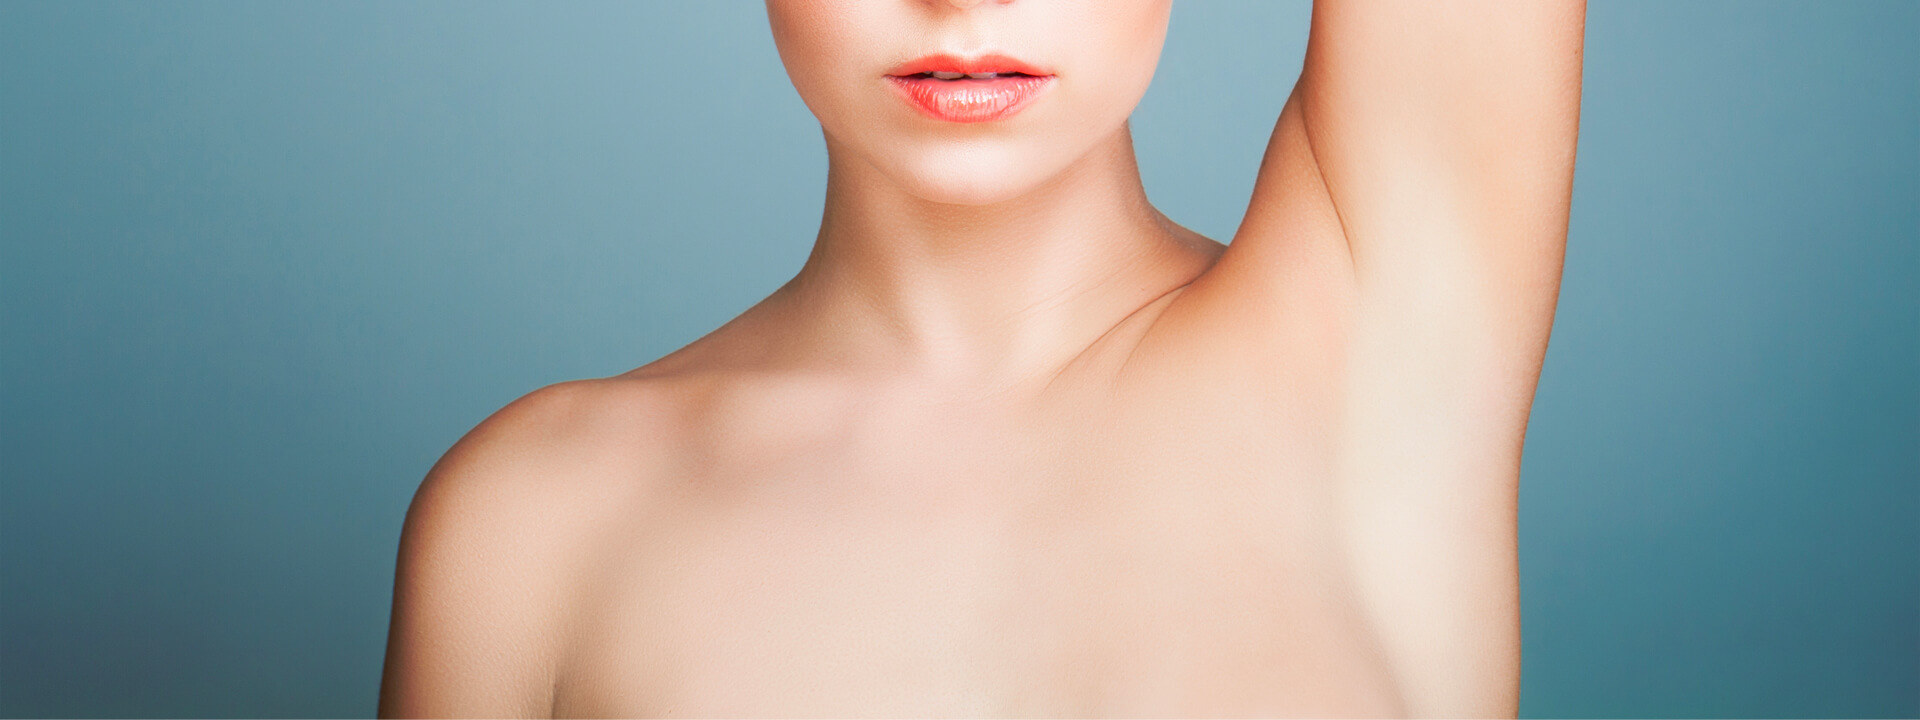 Hyperhidrosis Or Excess Sweating